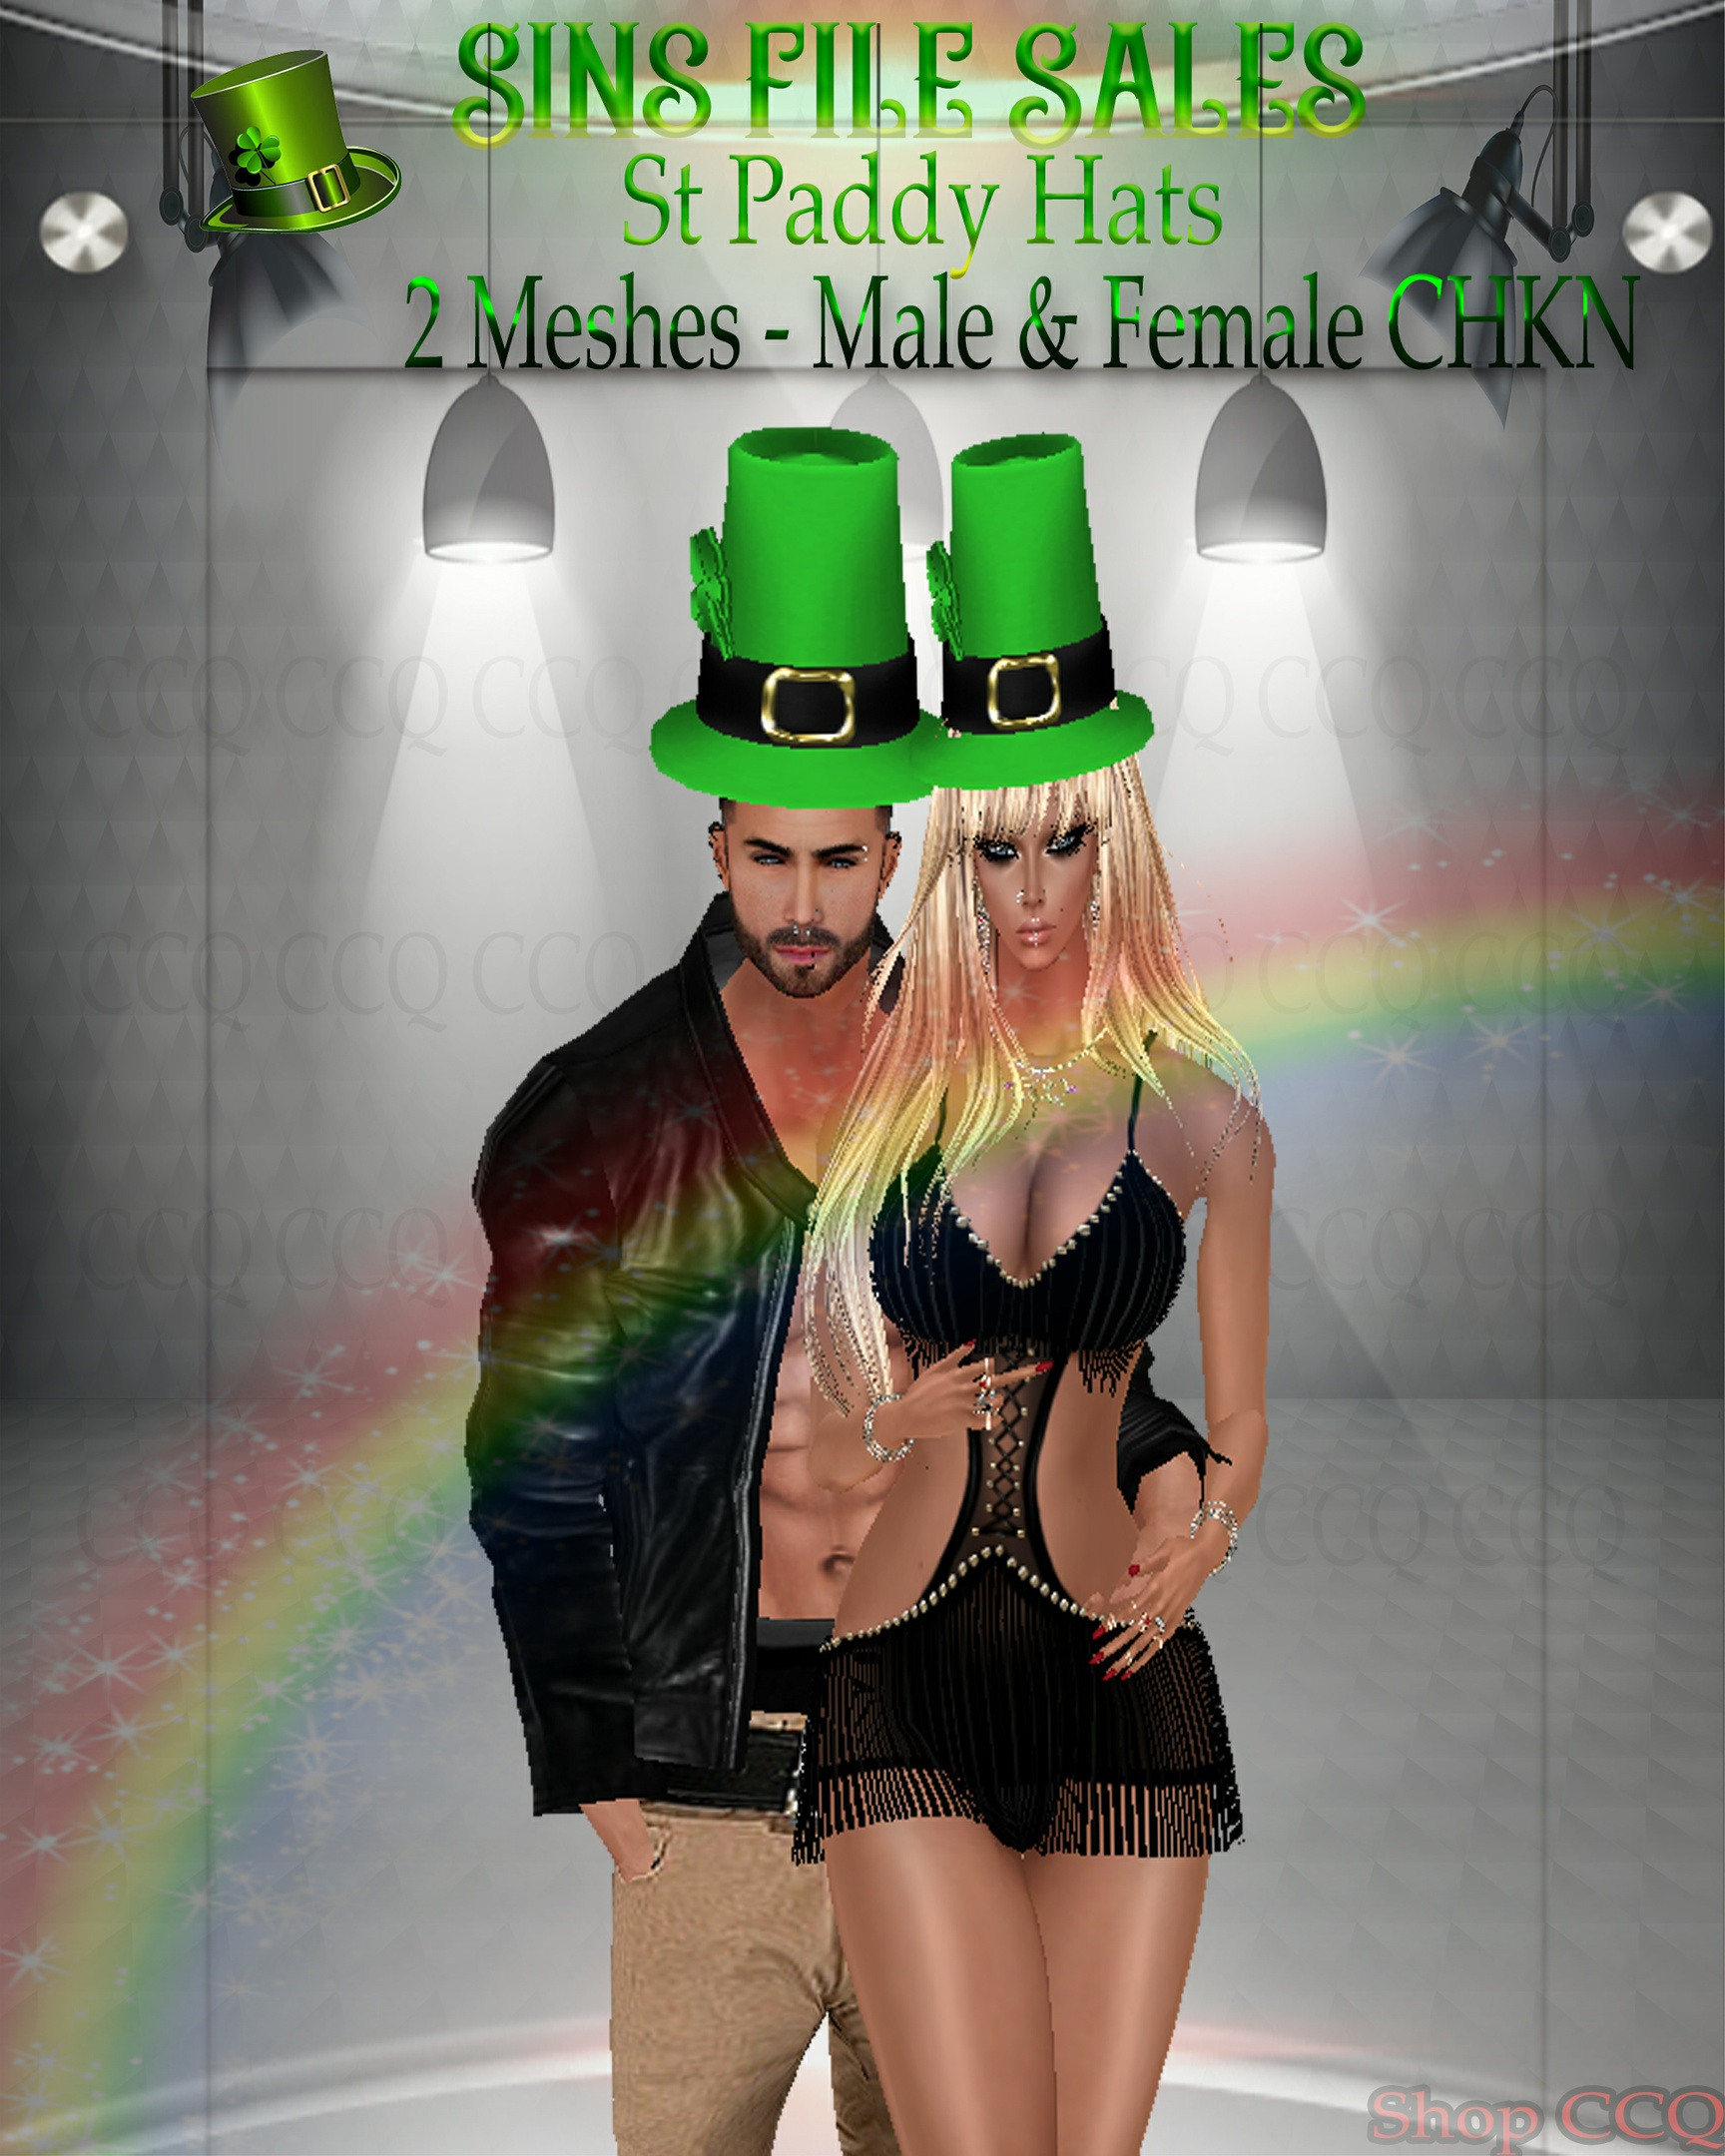 🍀 St Paddy Hats (2 Meshes Male & Female)